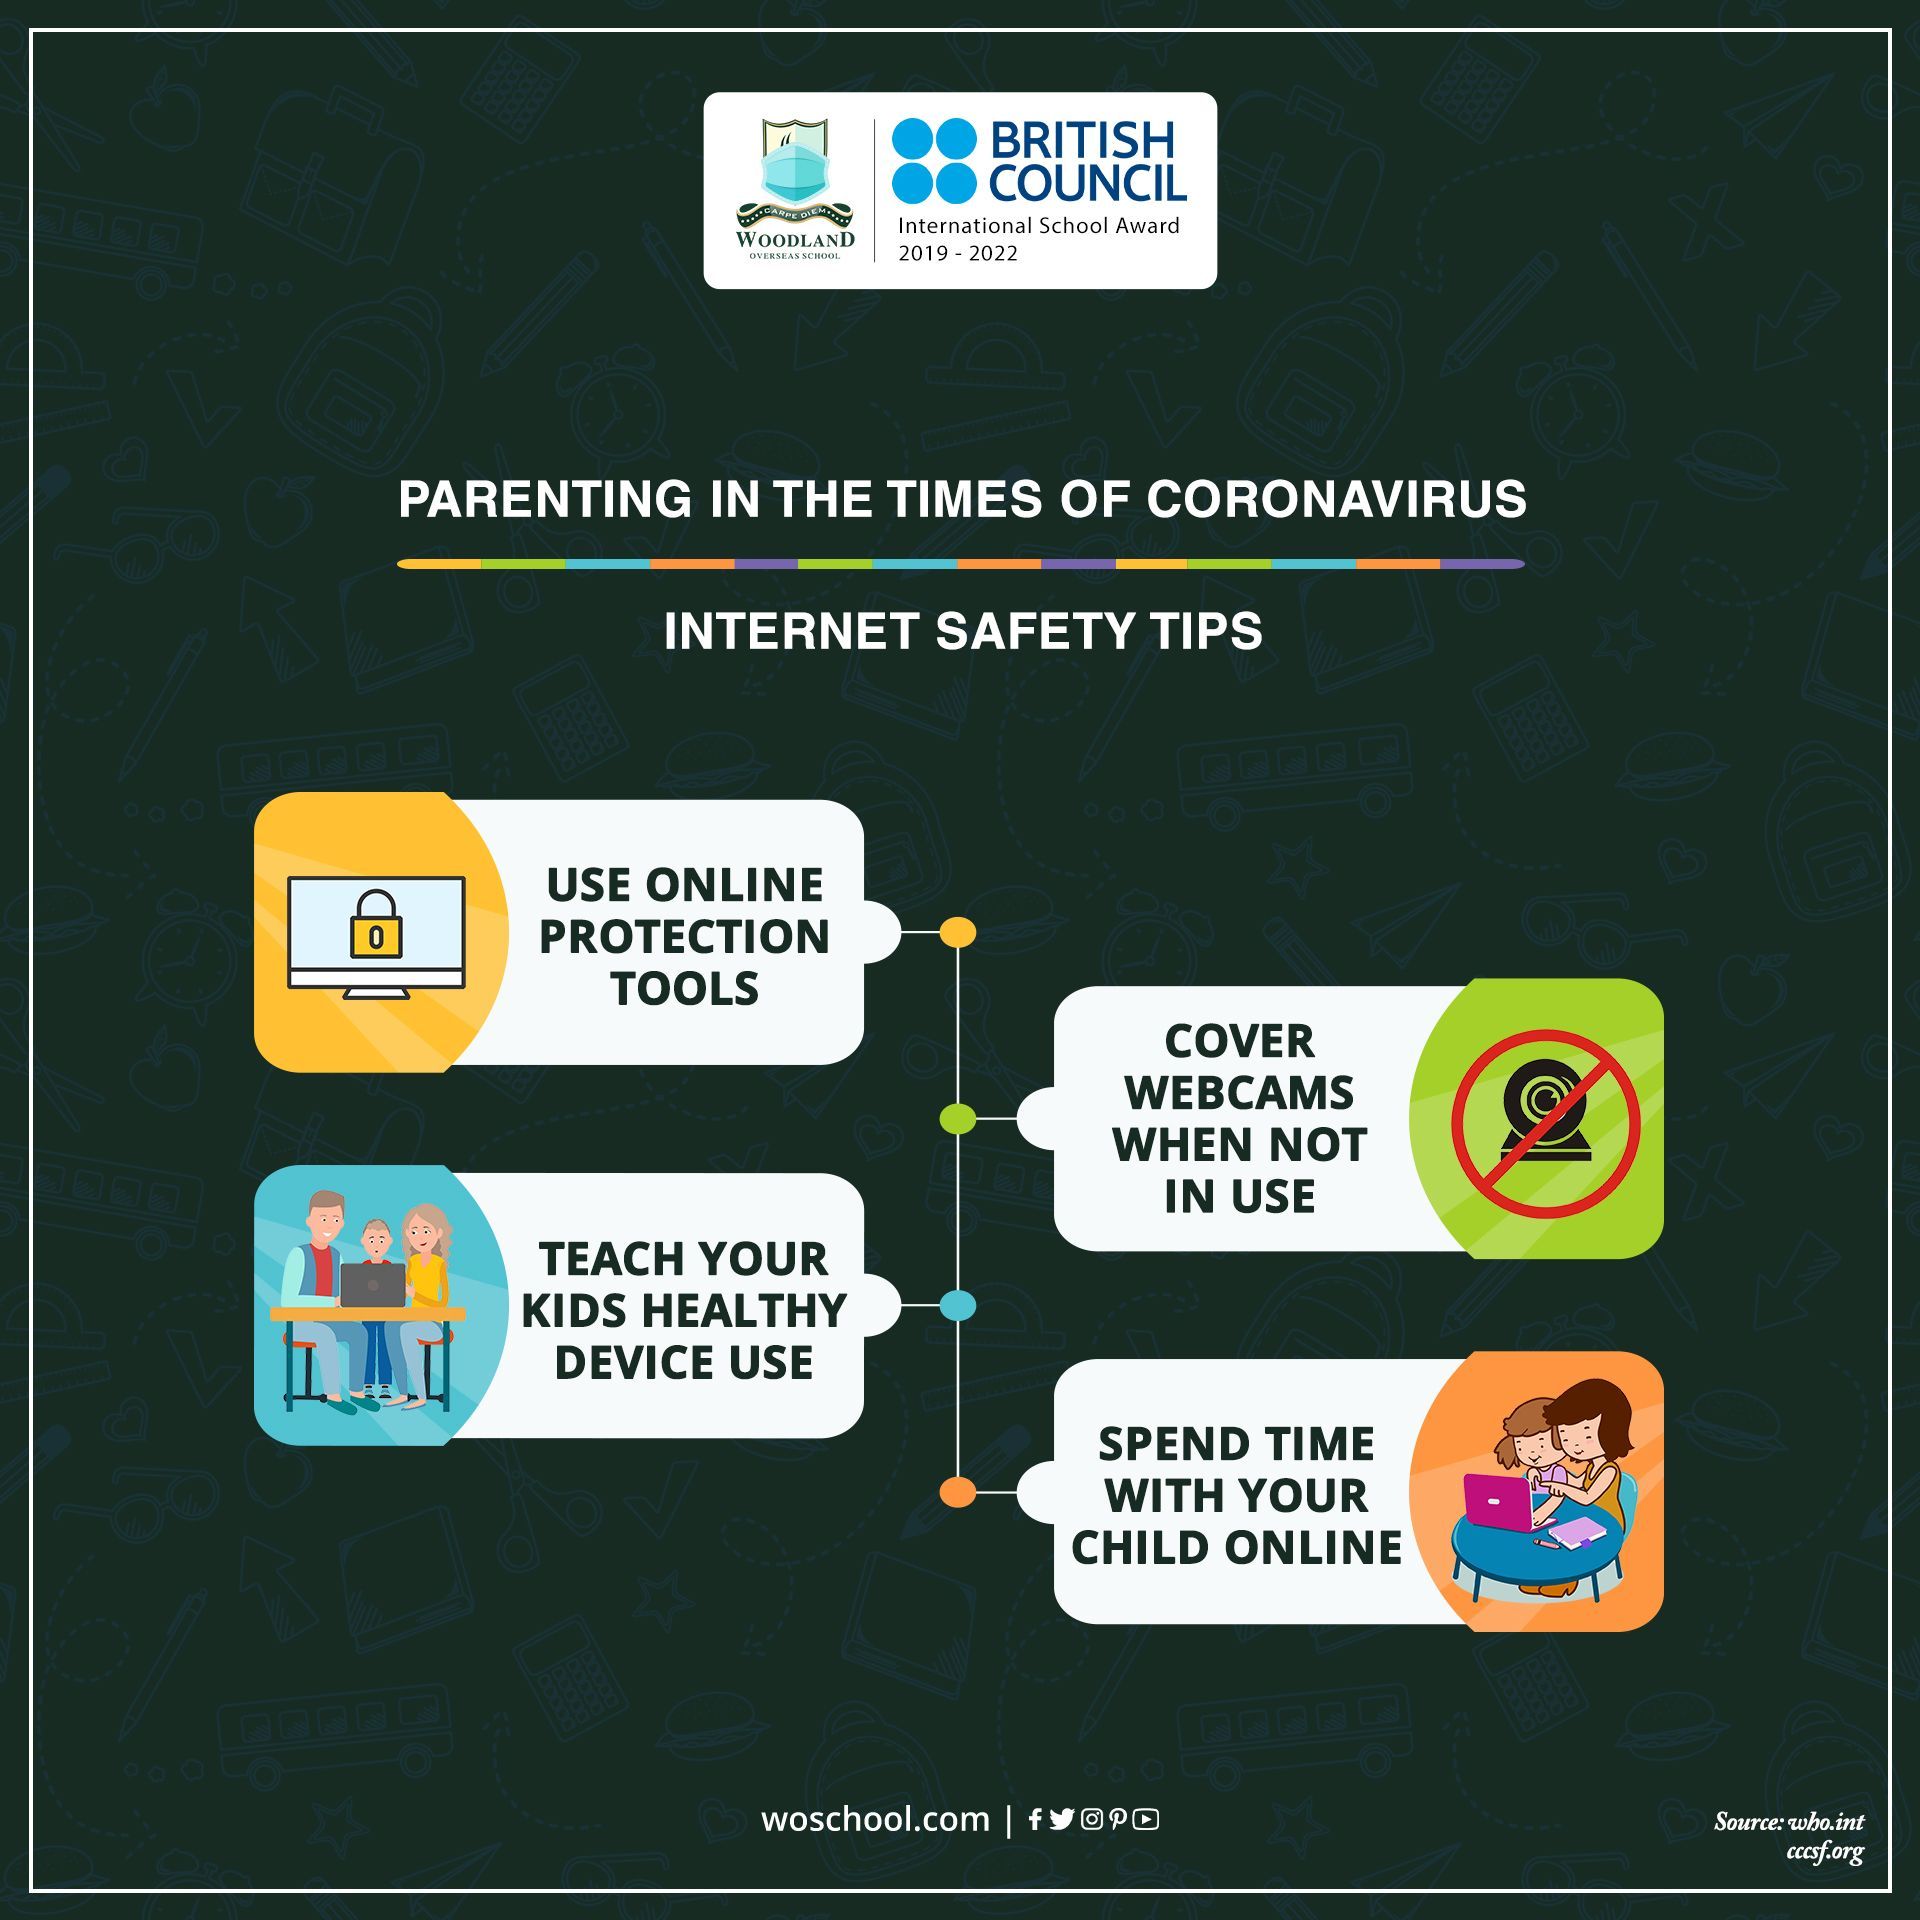 Make online learning safe for your children by taking care